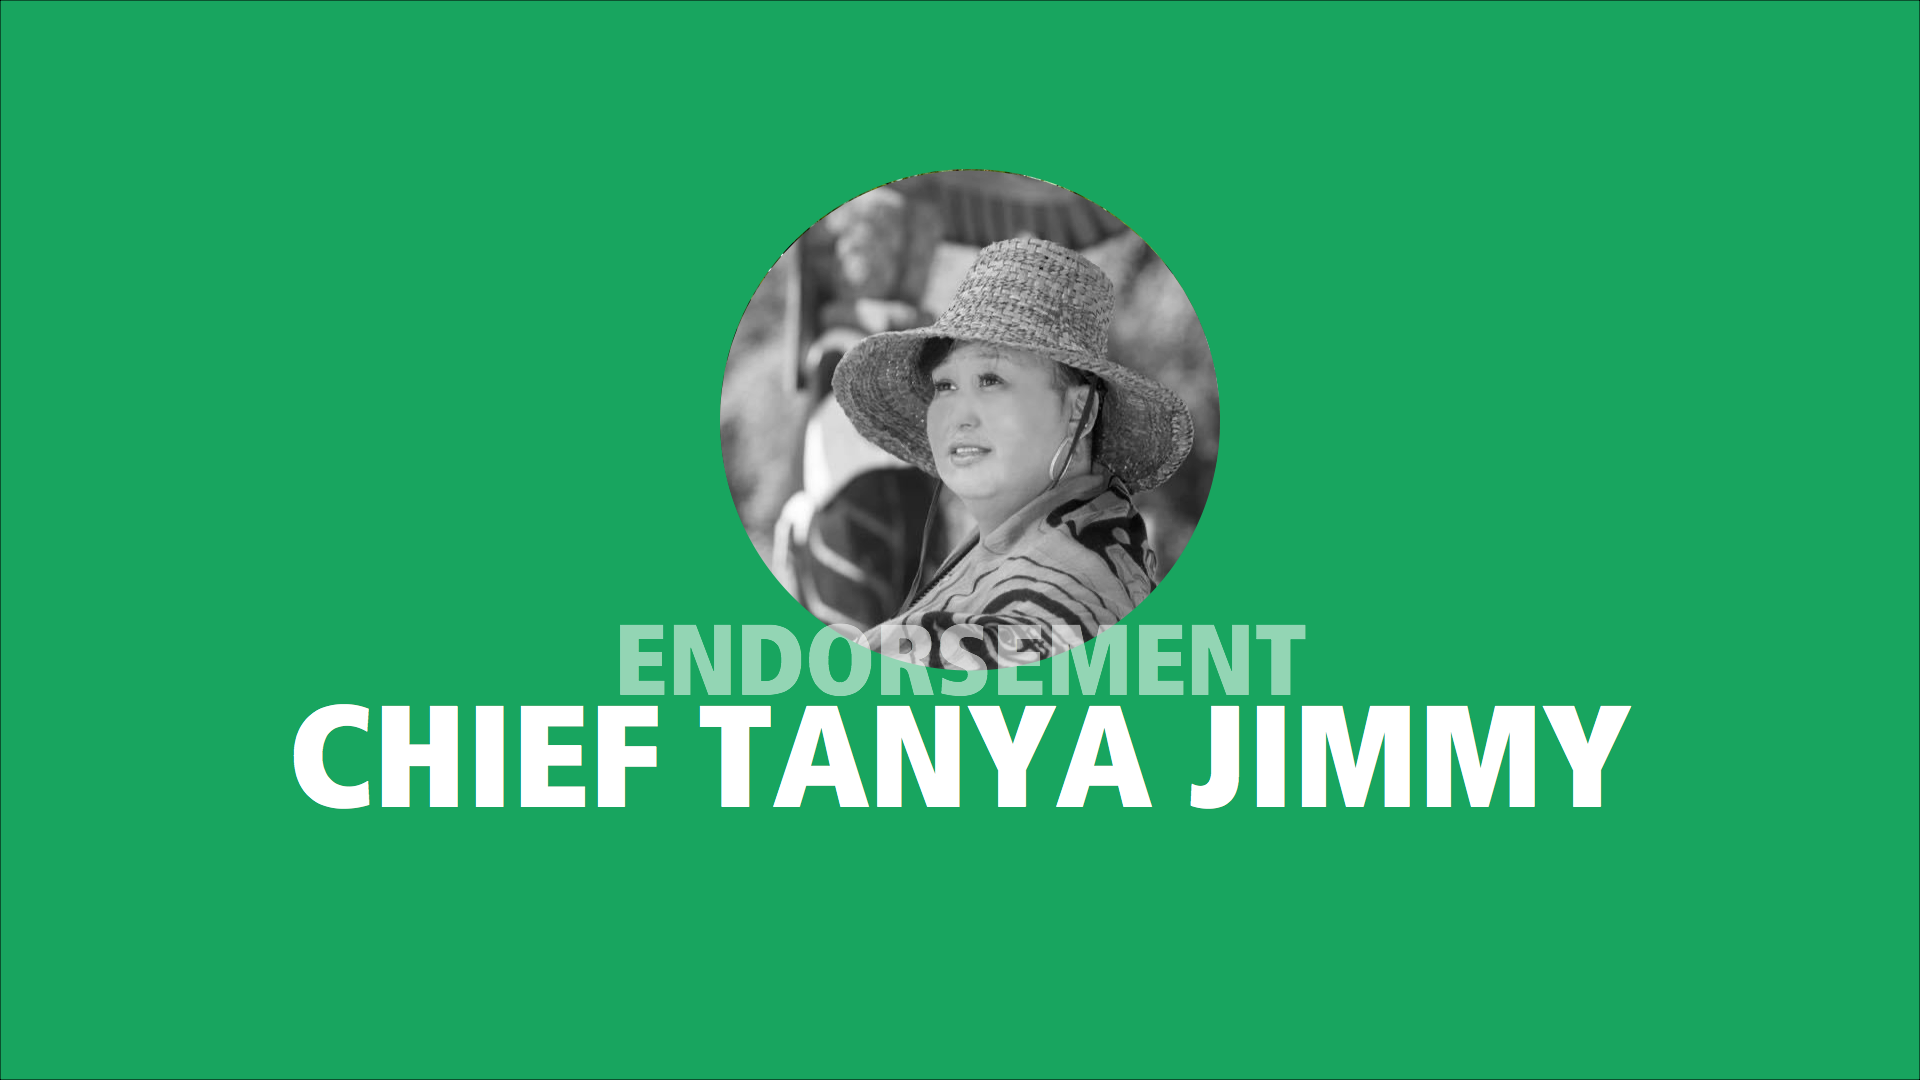 Chief Tanya Jimmy endorses Adam Olsen